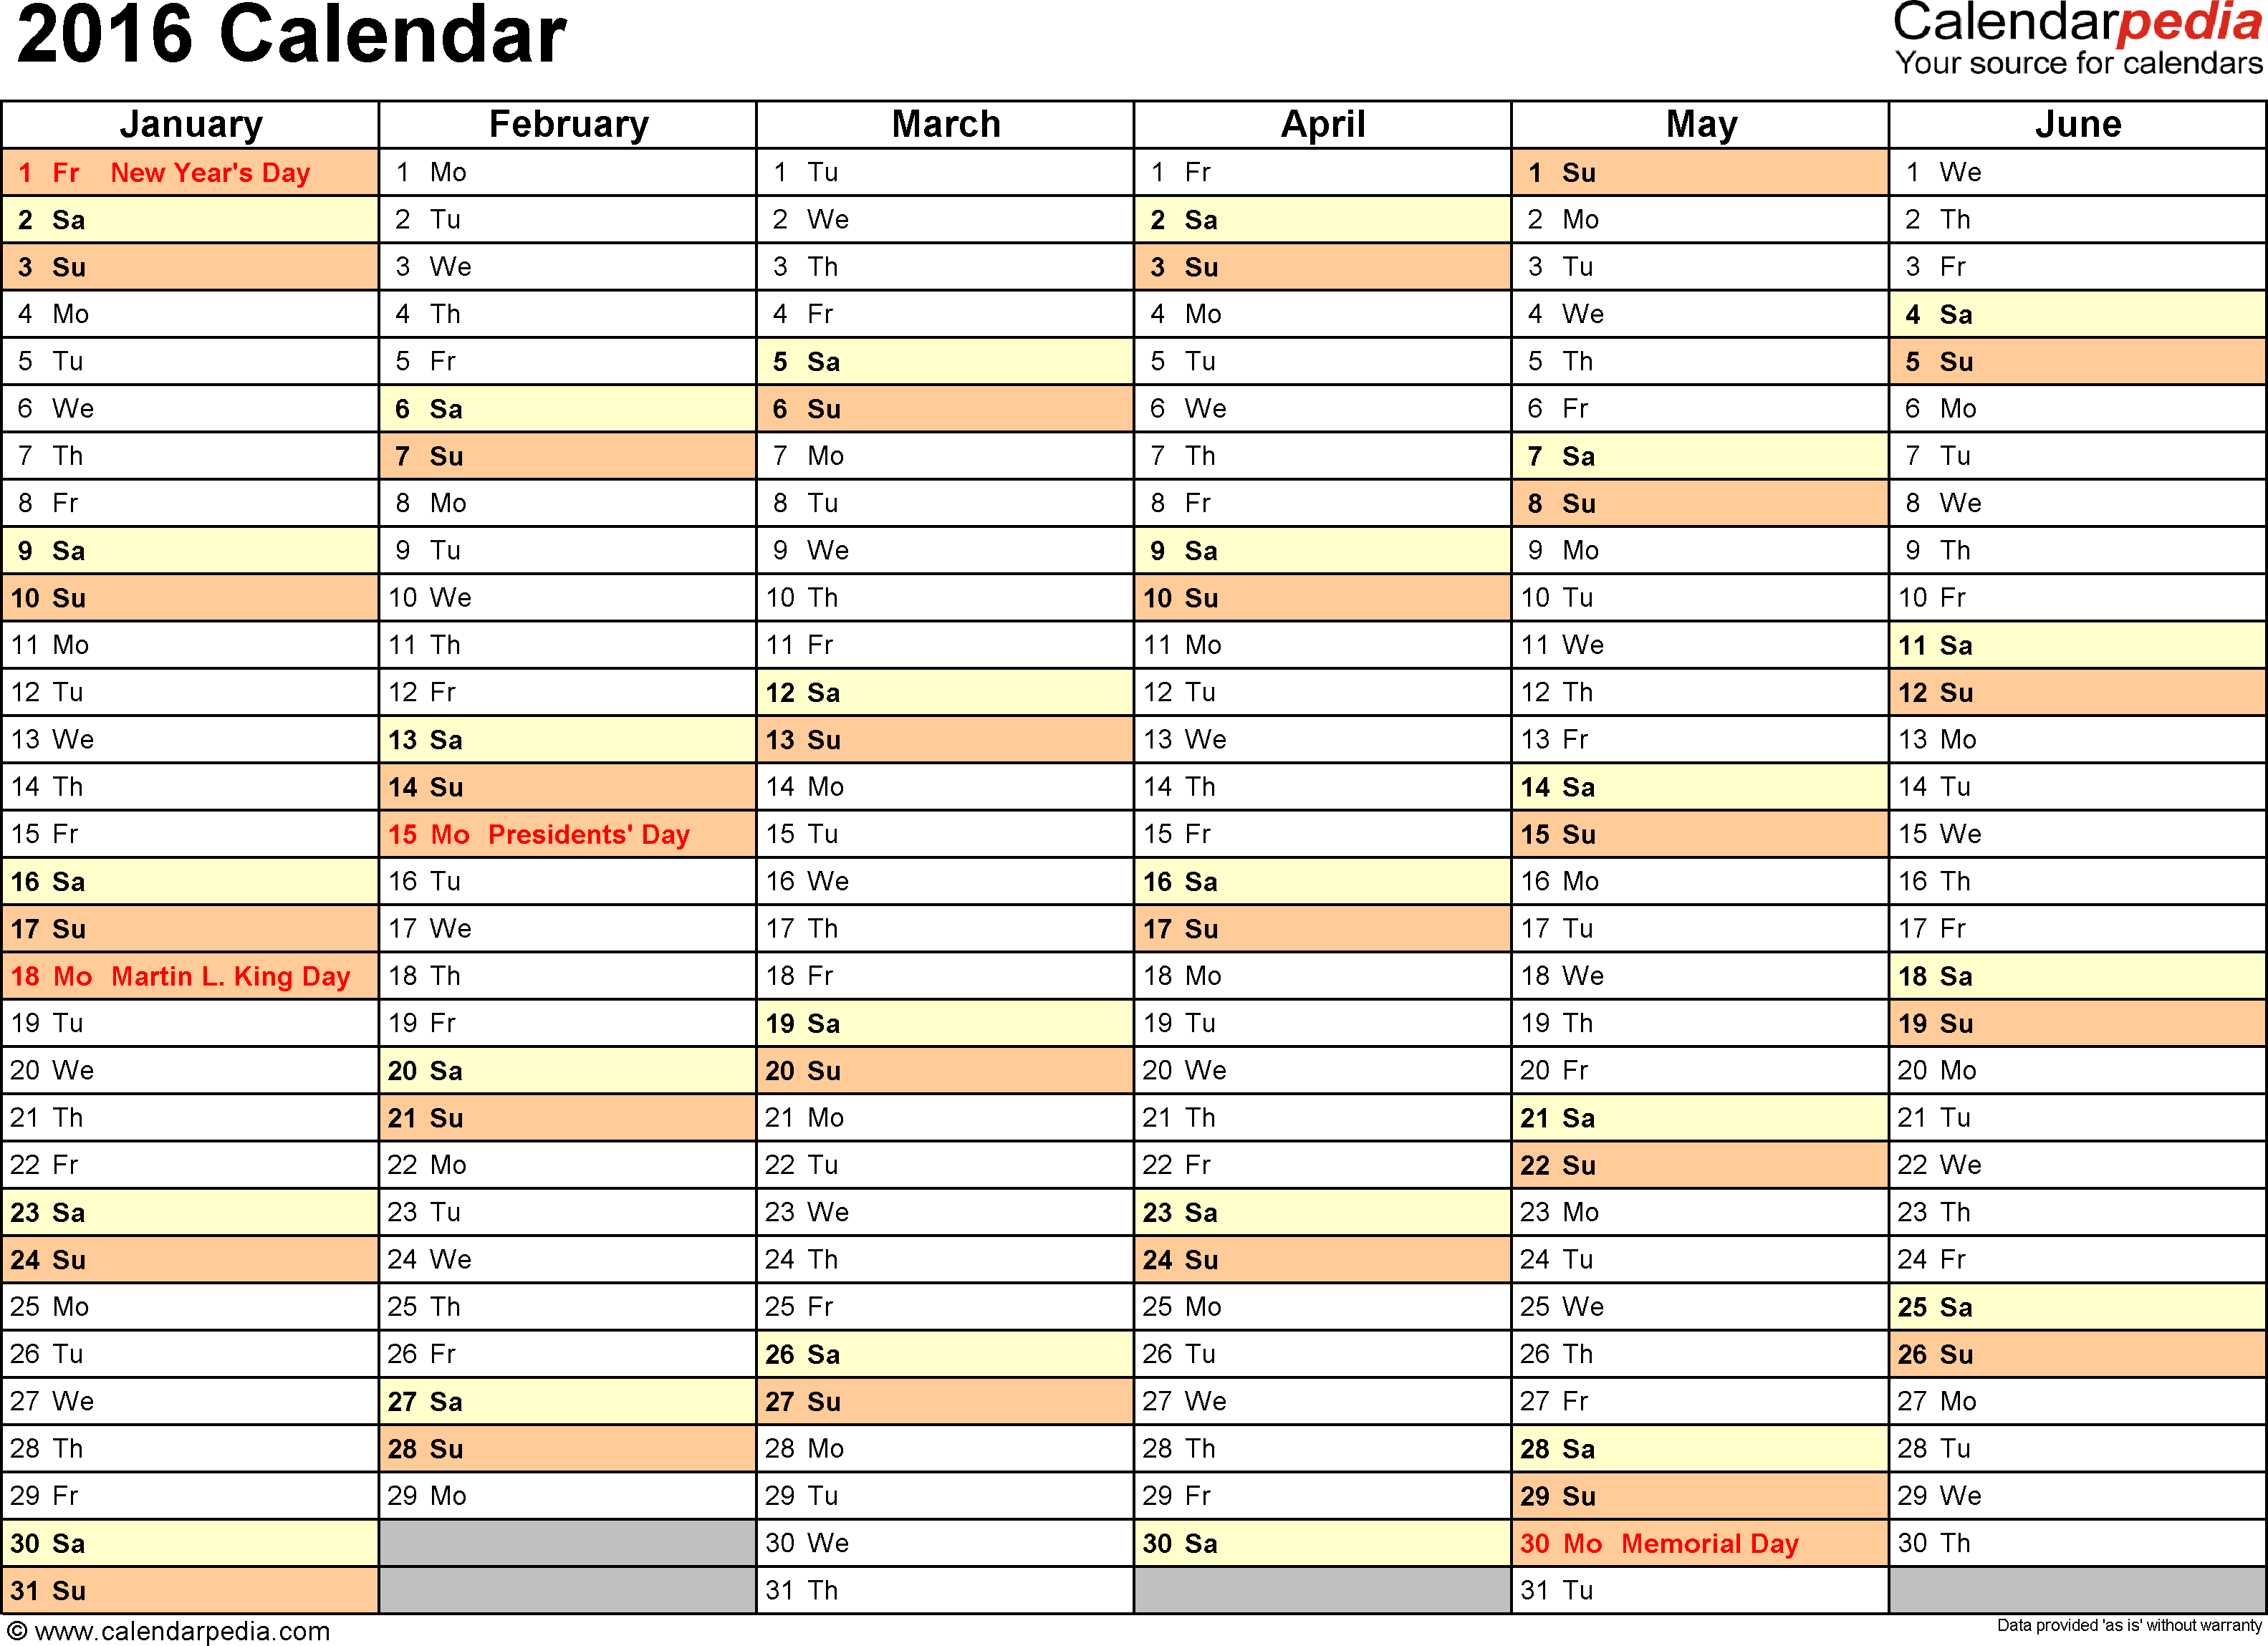 Ediblewildsus  Wonderful  Calendar  Download  Free Printable Excel Templates Xls With Goodlooking Template   Calendar For Excel Months Horizontally  Pages Landscape Orientation With Charming Terminal Value Excel Also Calculating The Mean In Excel In Addition Excel Vba Left Function And Excel Color Alternate Rows As Well As How To Learn Excel Spreadsheets Additionally If Functions In Excel  From Calendarpediacom With Ediblewildsus  Goodlooking  Calendar  Download  Free Printable Excel Templates Xls With Charming Template   Calendar For Excel Months Horizontally  Pages Landscape Orientation And Wonderful Terminal Value Excel Also Calculating The Mean In Excel In Addition Excel Vba Left Function From Calendarpediacom